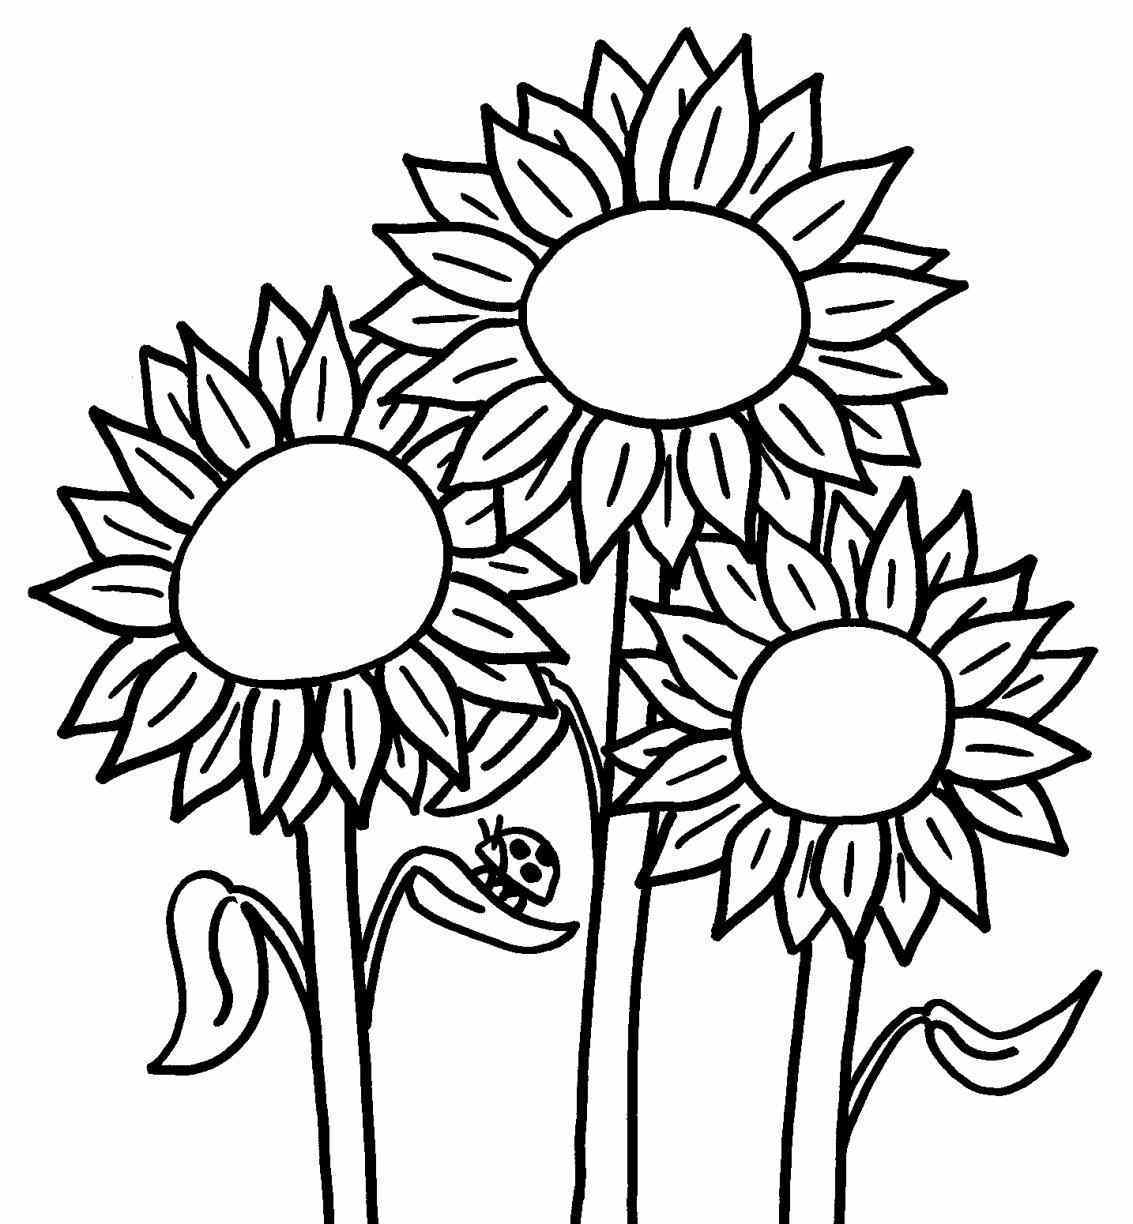 454 Sunflowers free clipart.